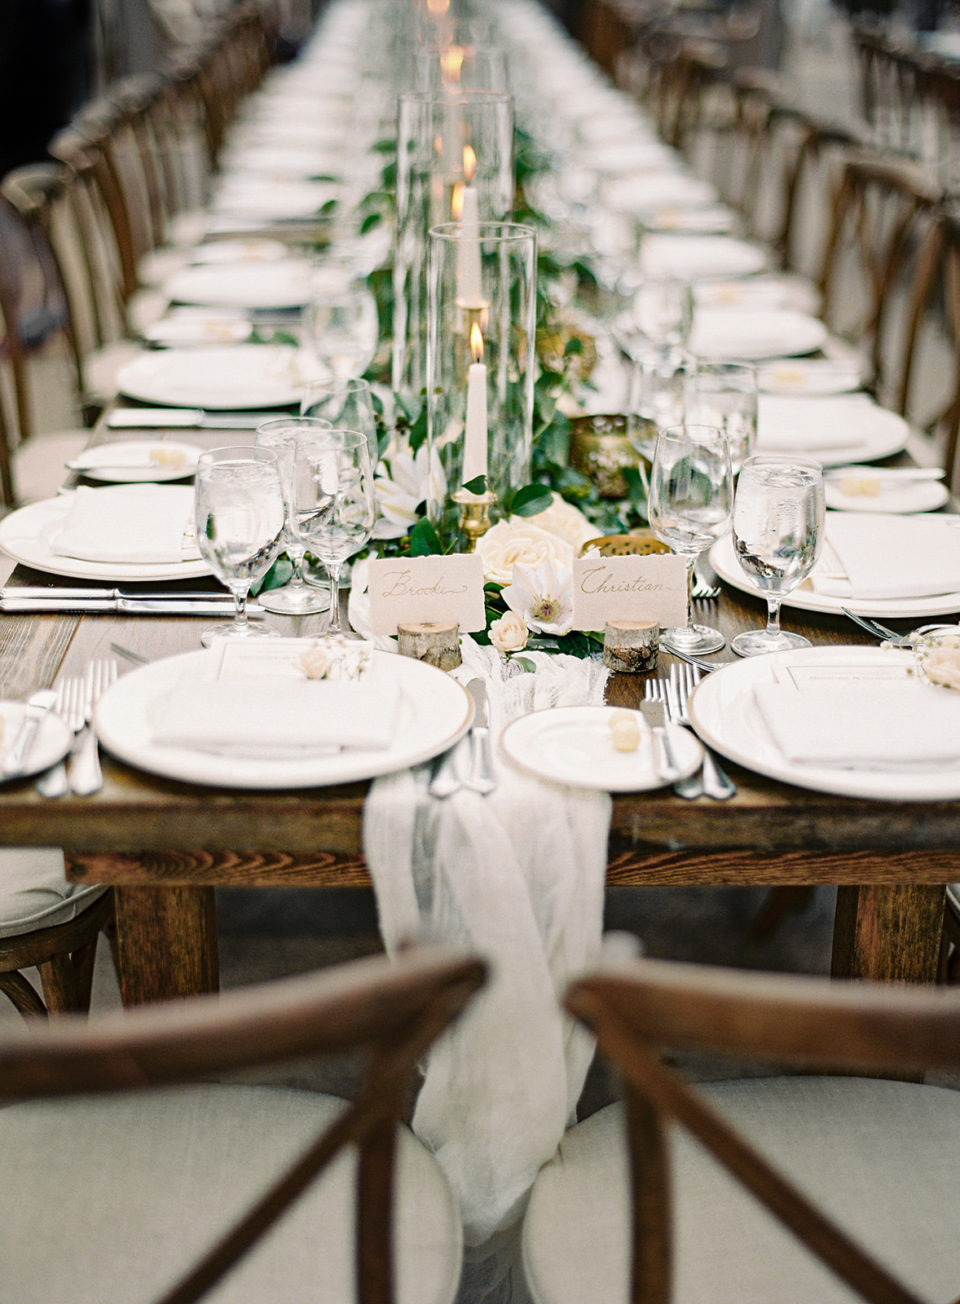 Calluna Events Alp Isle Vail Colorado Elegant Romantic Tablescape